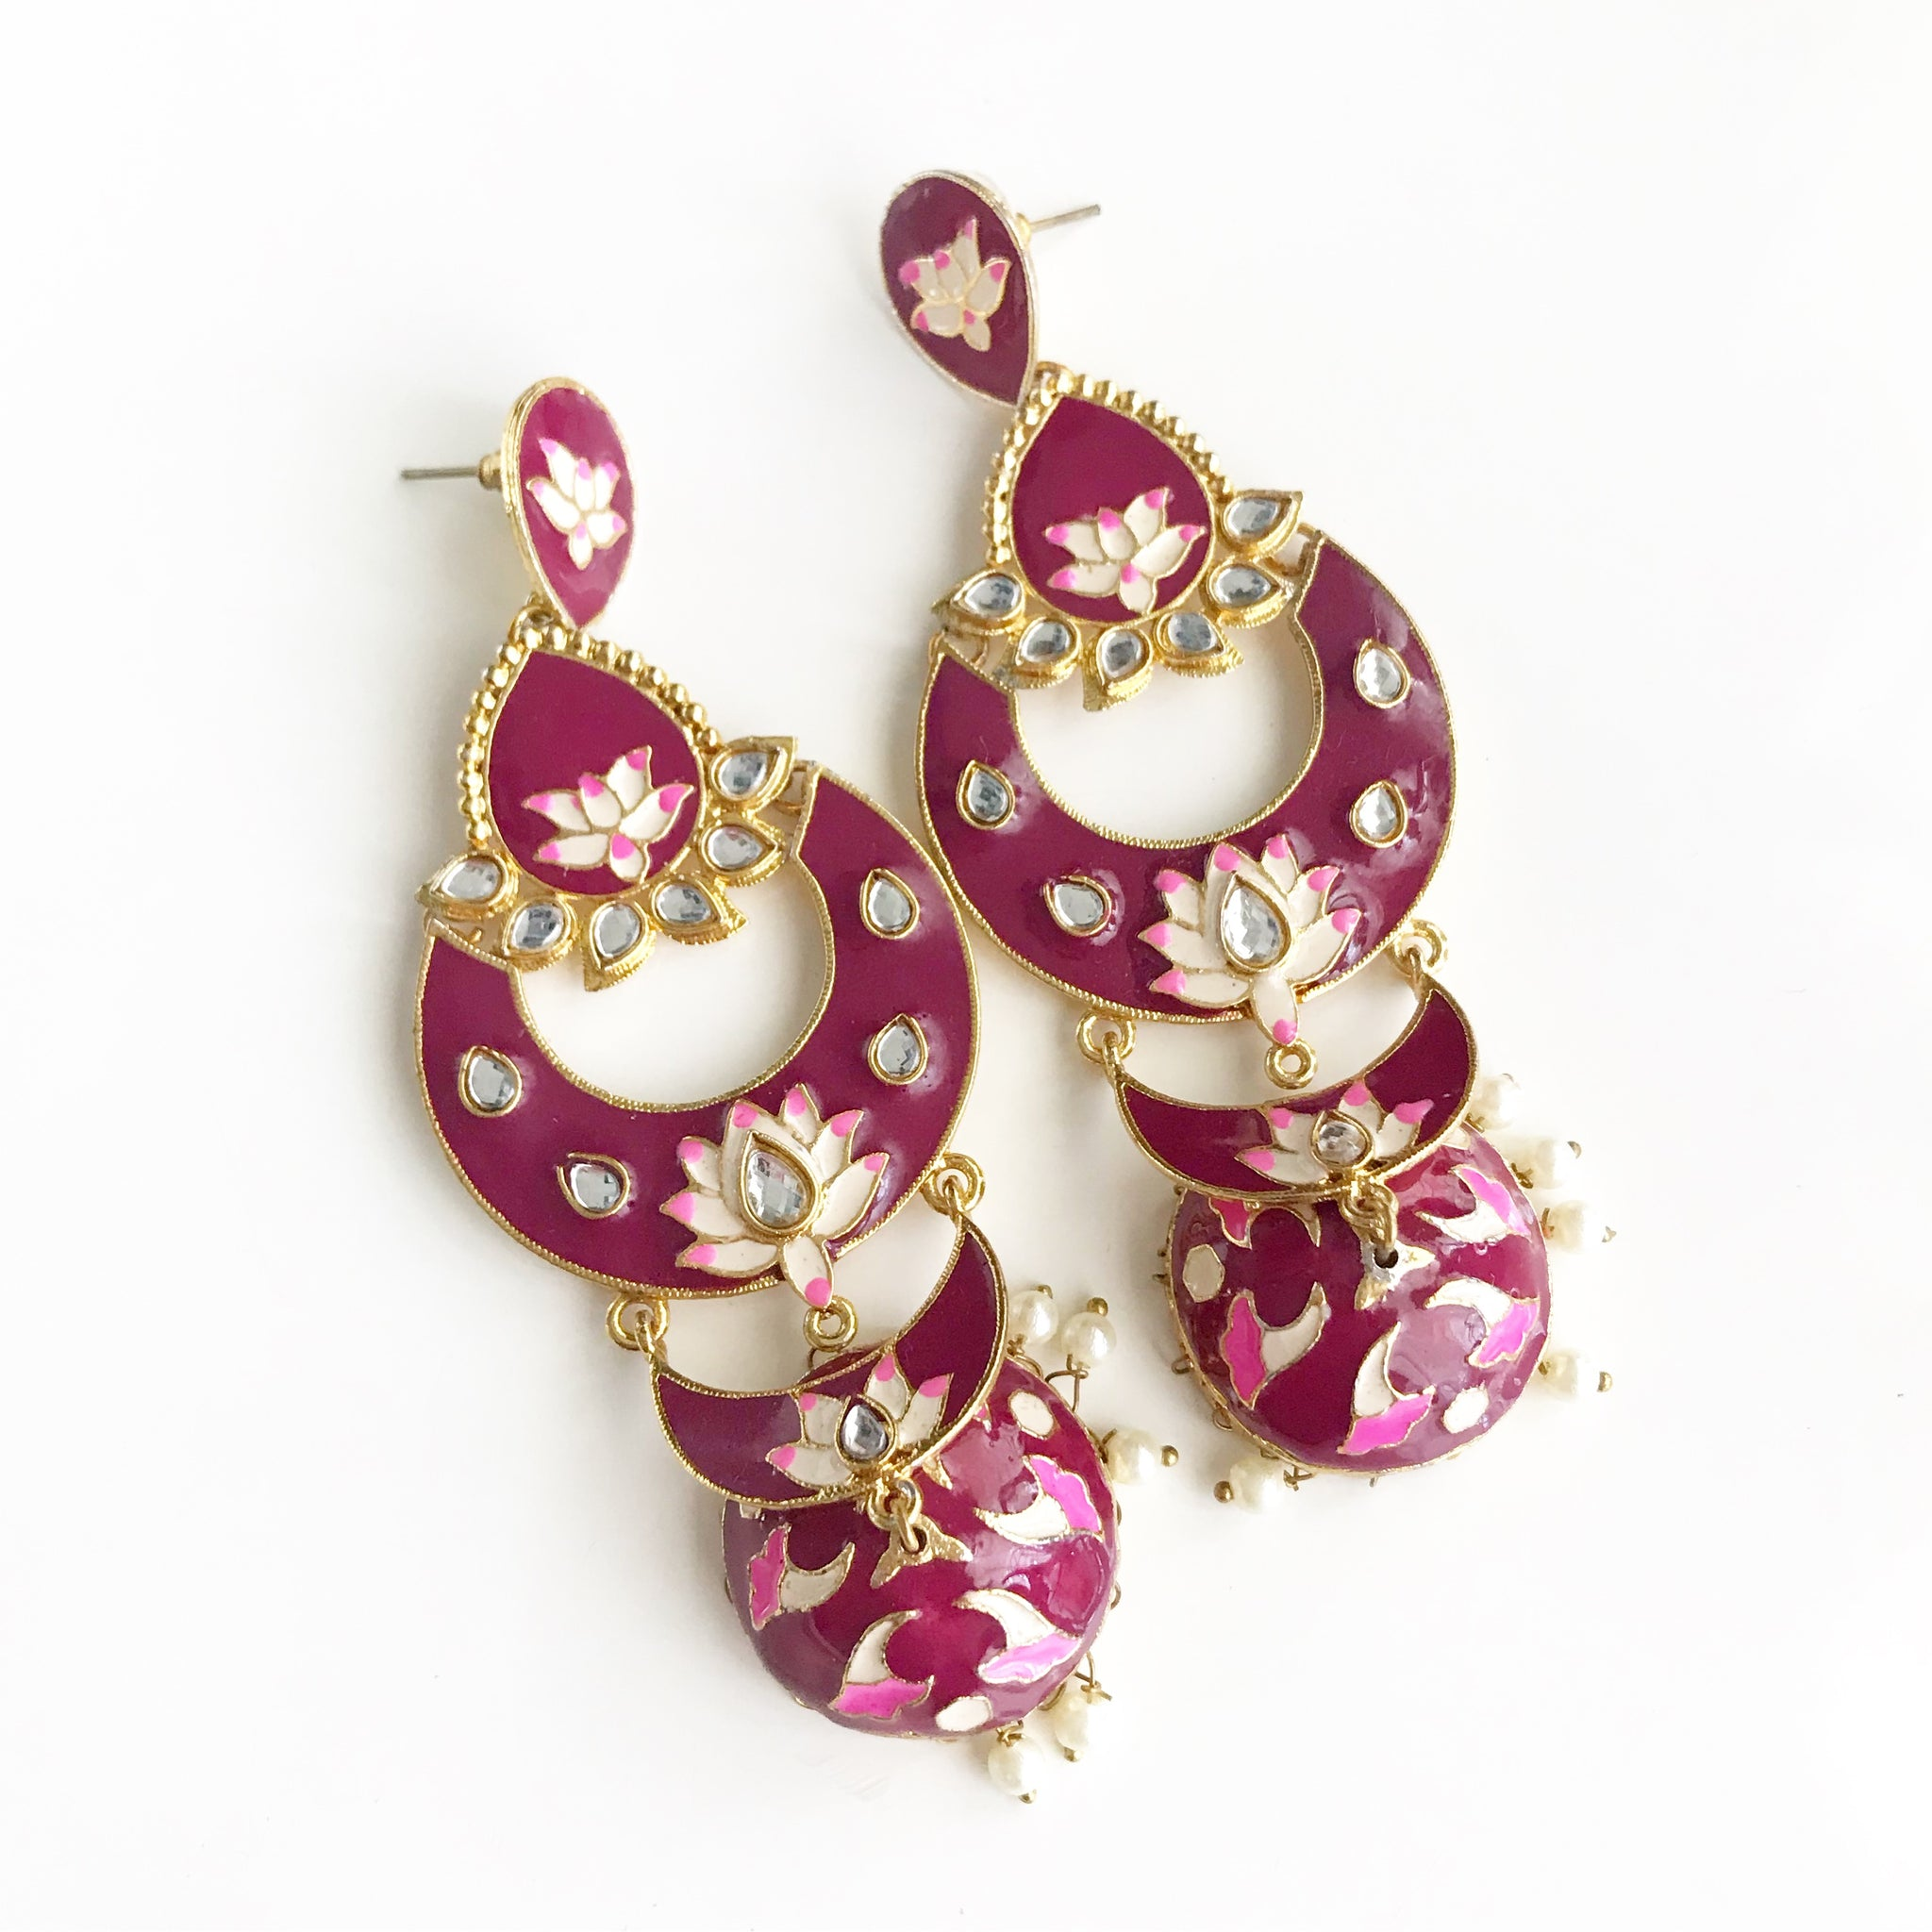 EXTREMELY BIG JHUMKAS